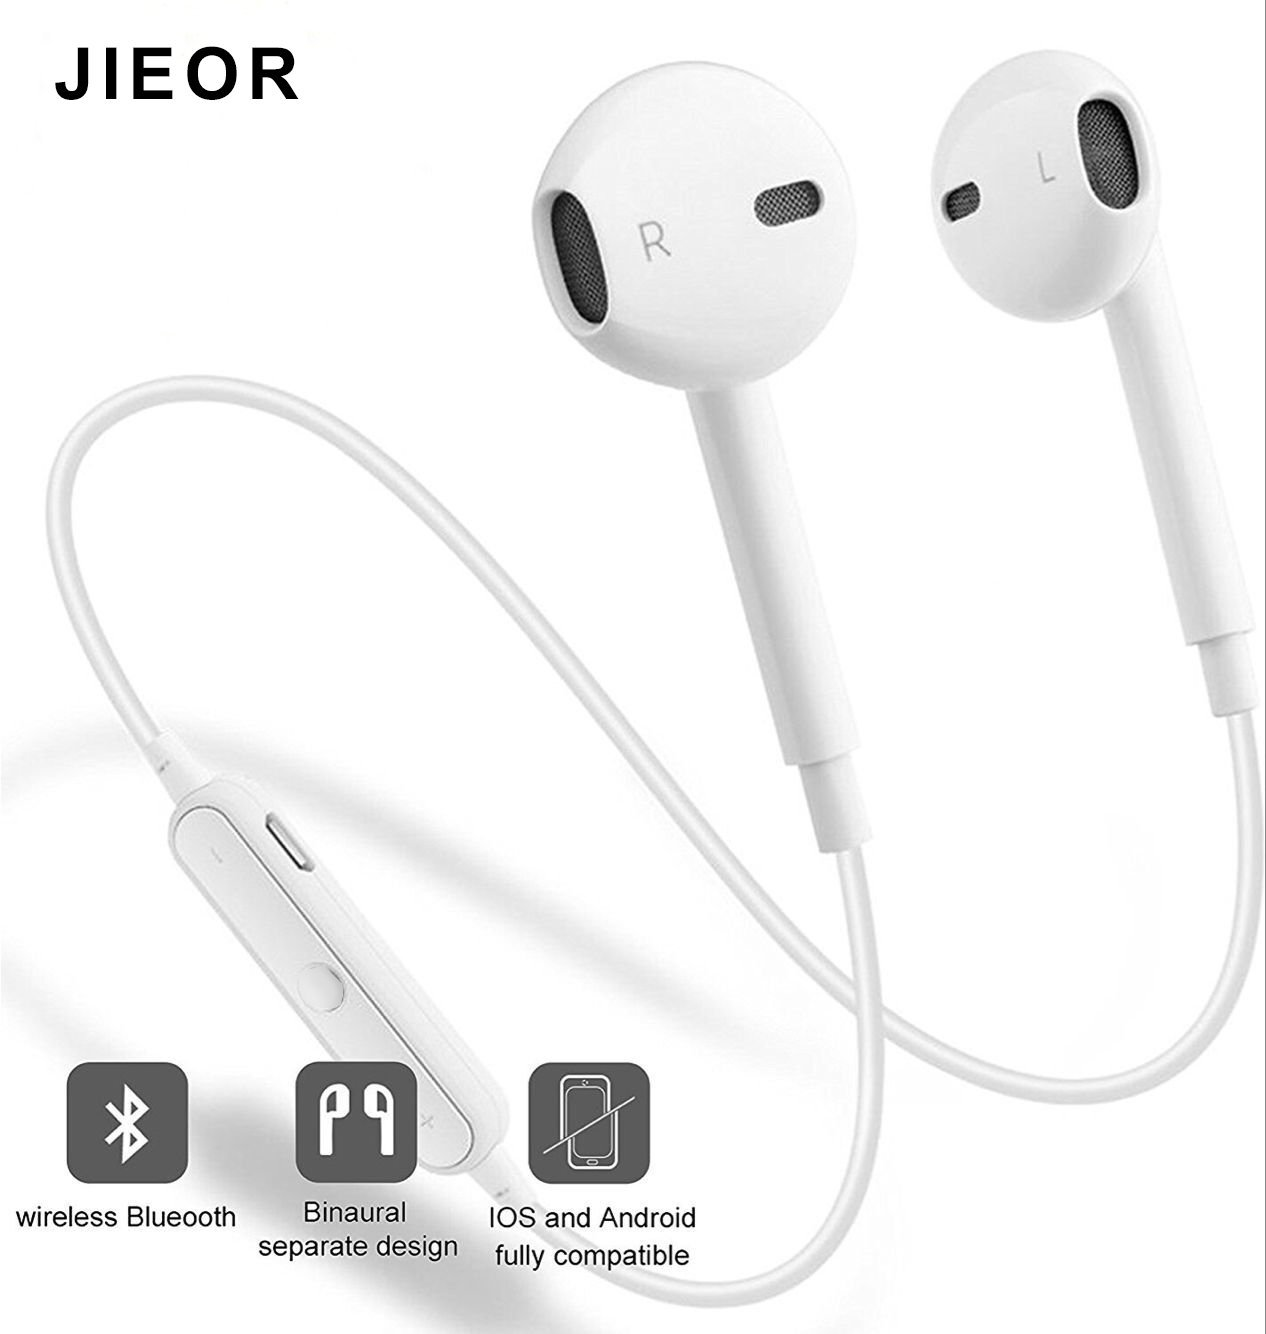 JIEOR Bluetooth Headphones,Wireless Headphones Bluetooth V4.2 Earbuds with Mic Stereo Earphones Noise Cancelling Sweatproof Sports Headset for iPhone X 8 7 Plus Samsung Galaxy S7 S8 S9 and Android by JIEOR